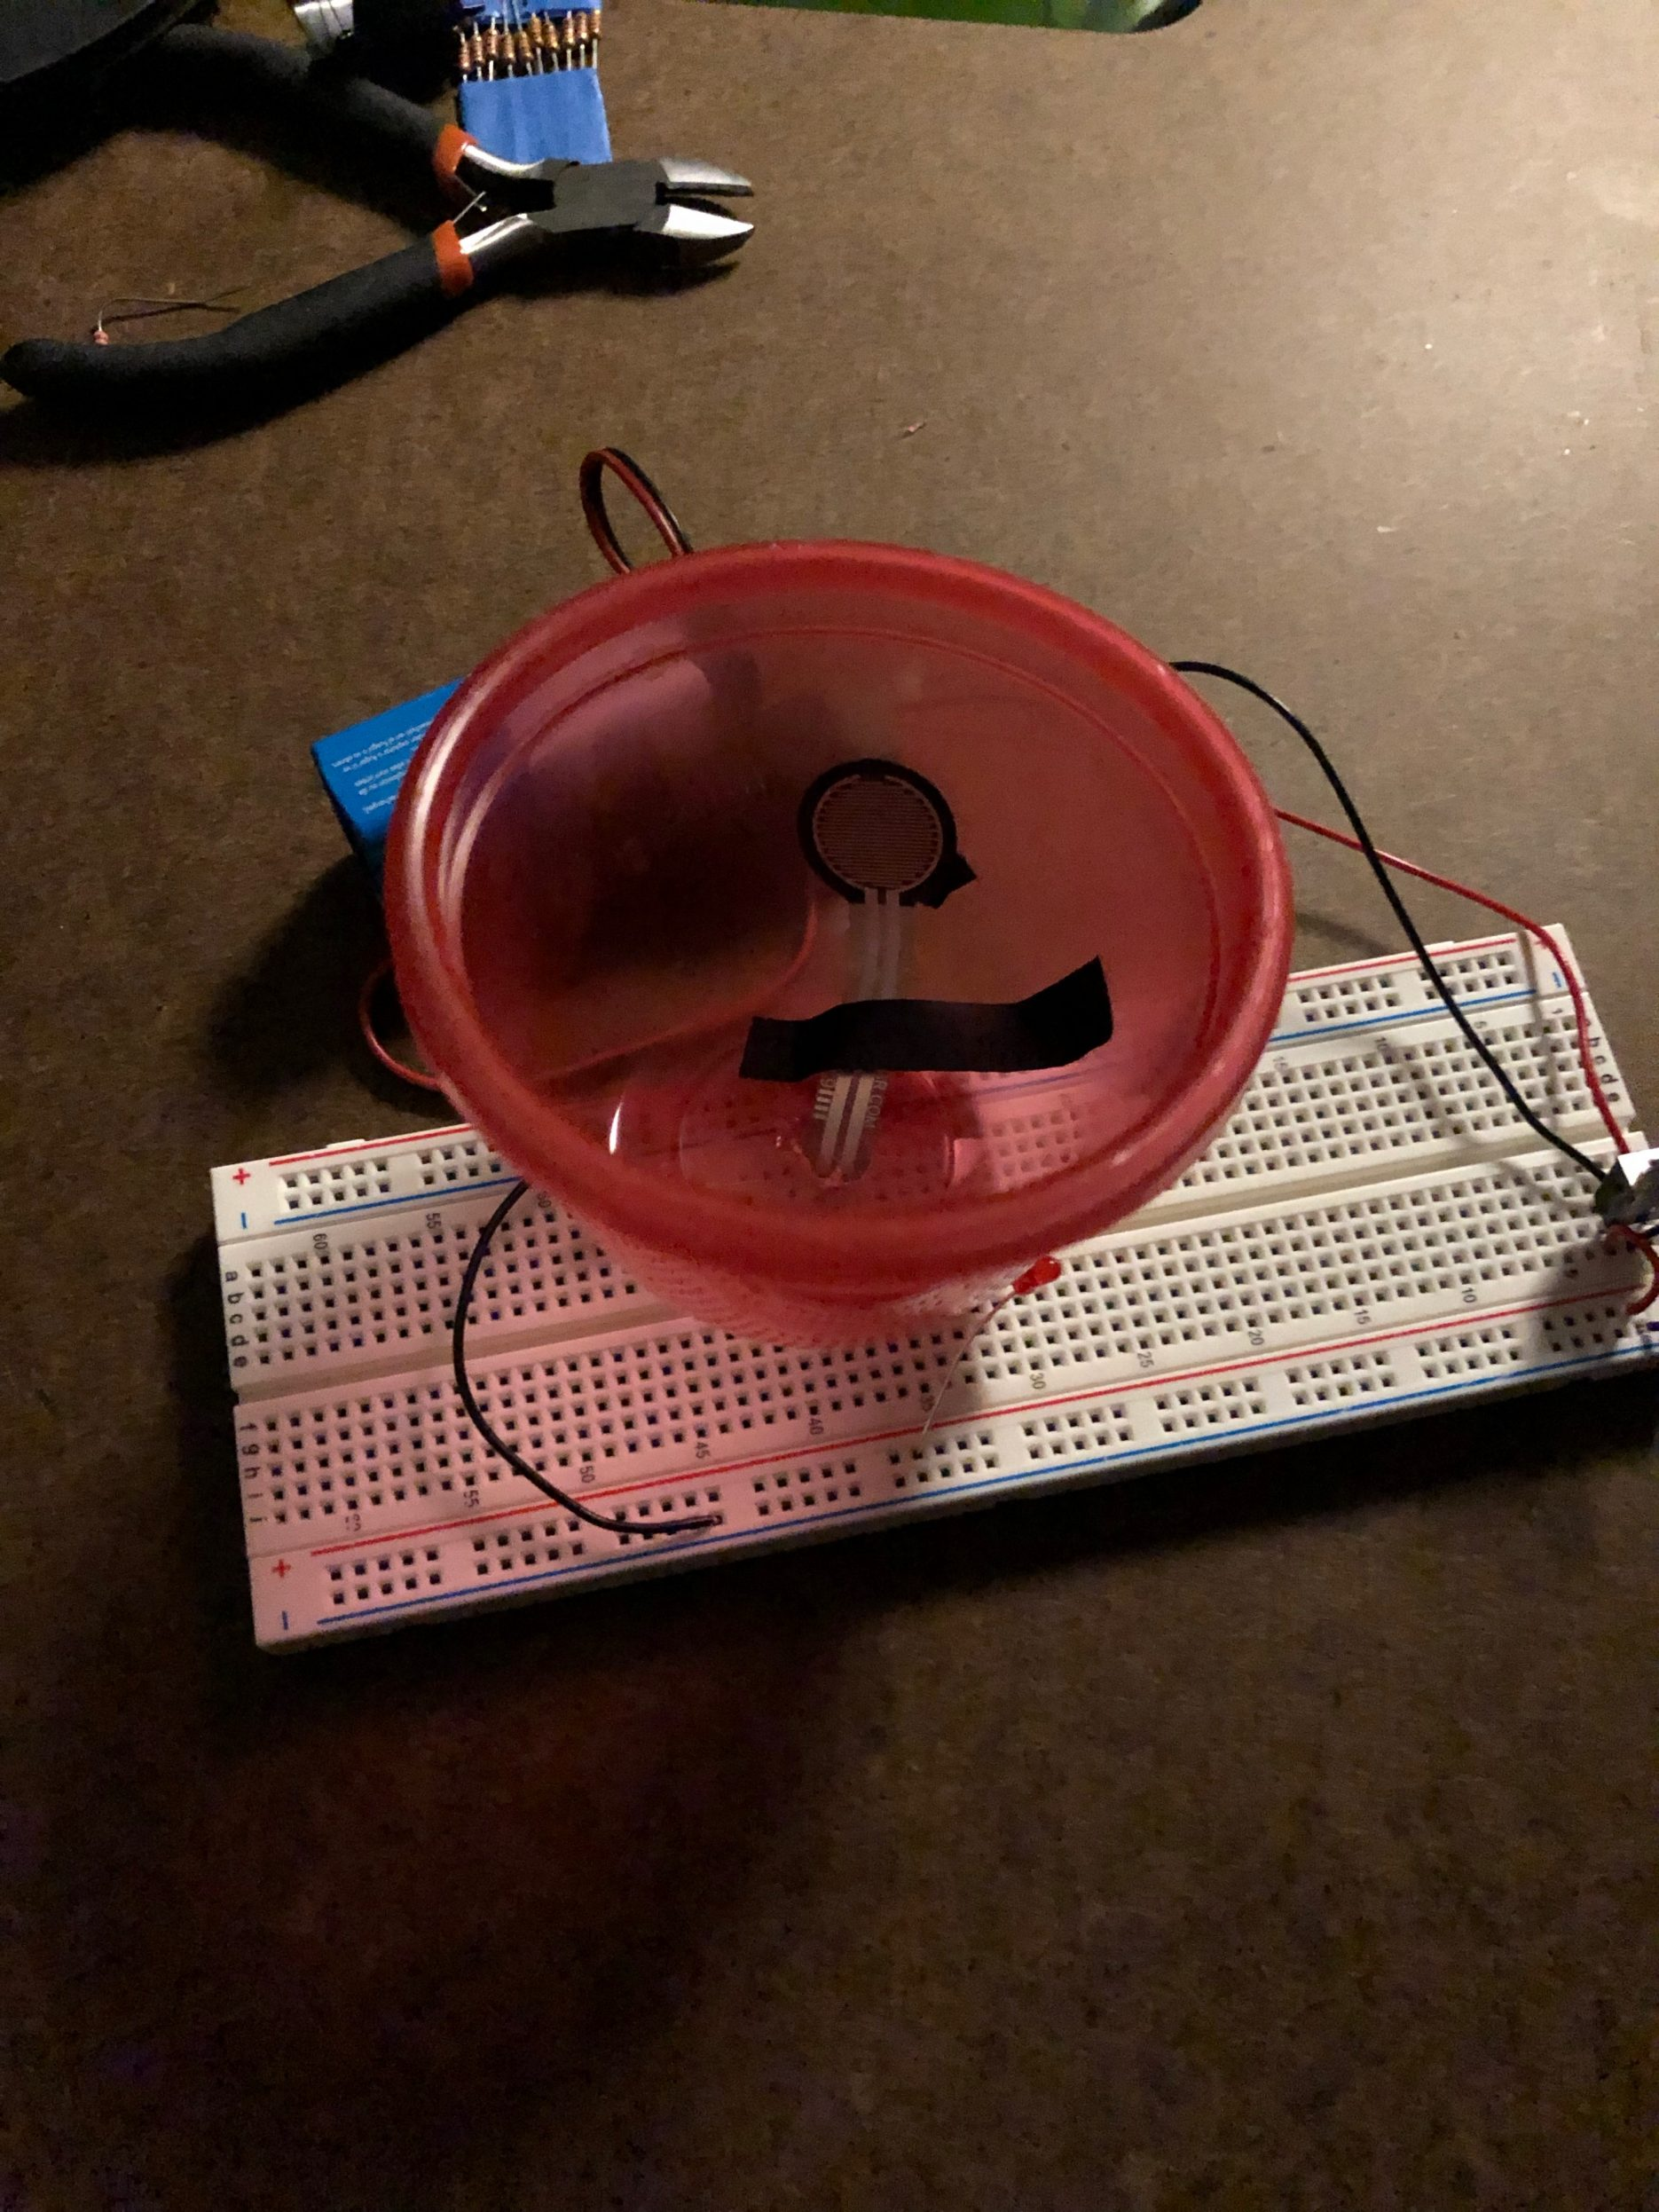 Bowl with tactile pressure sensor